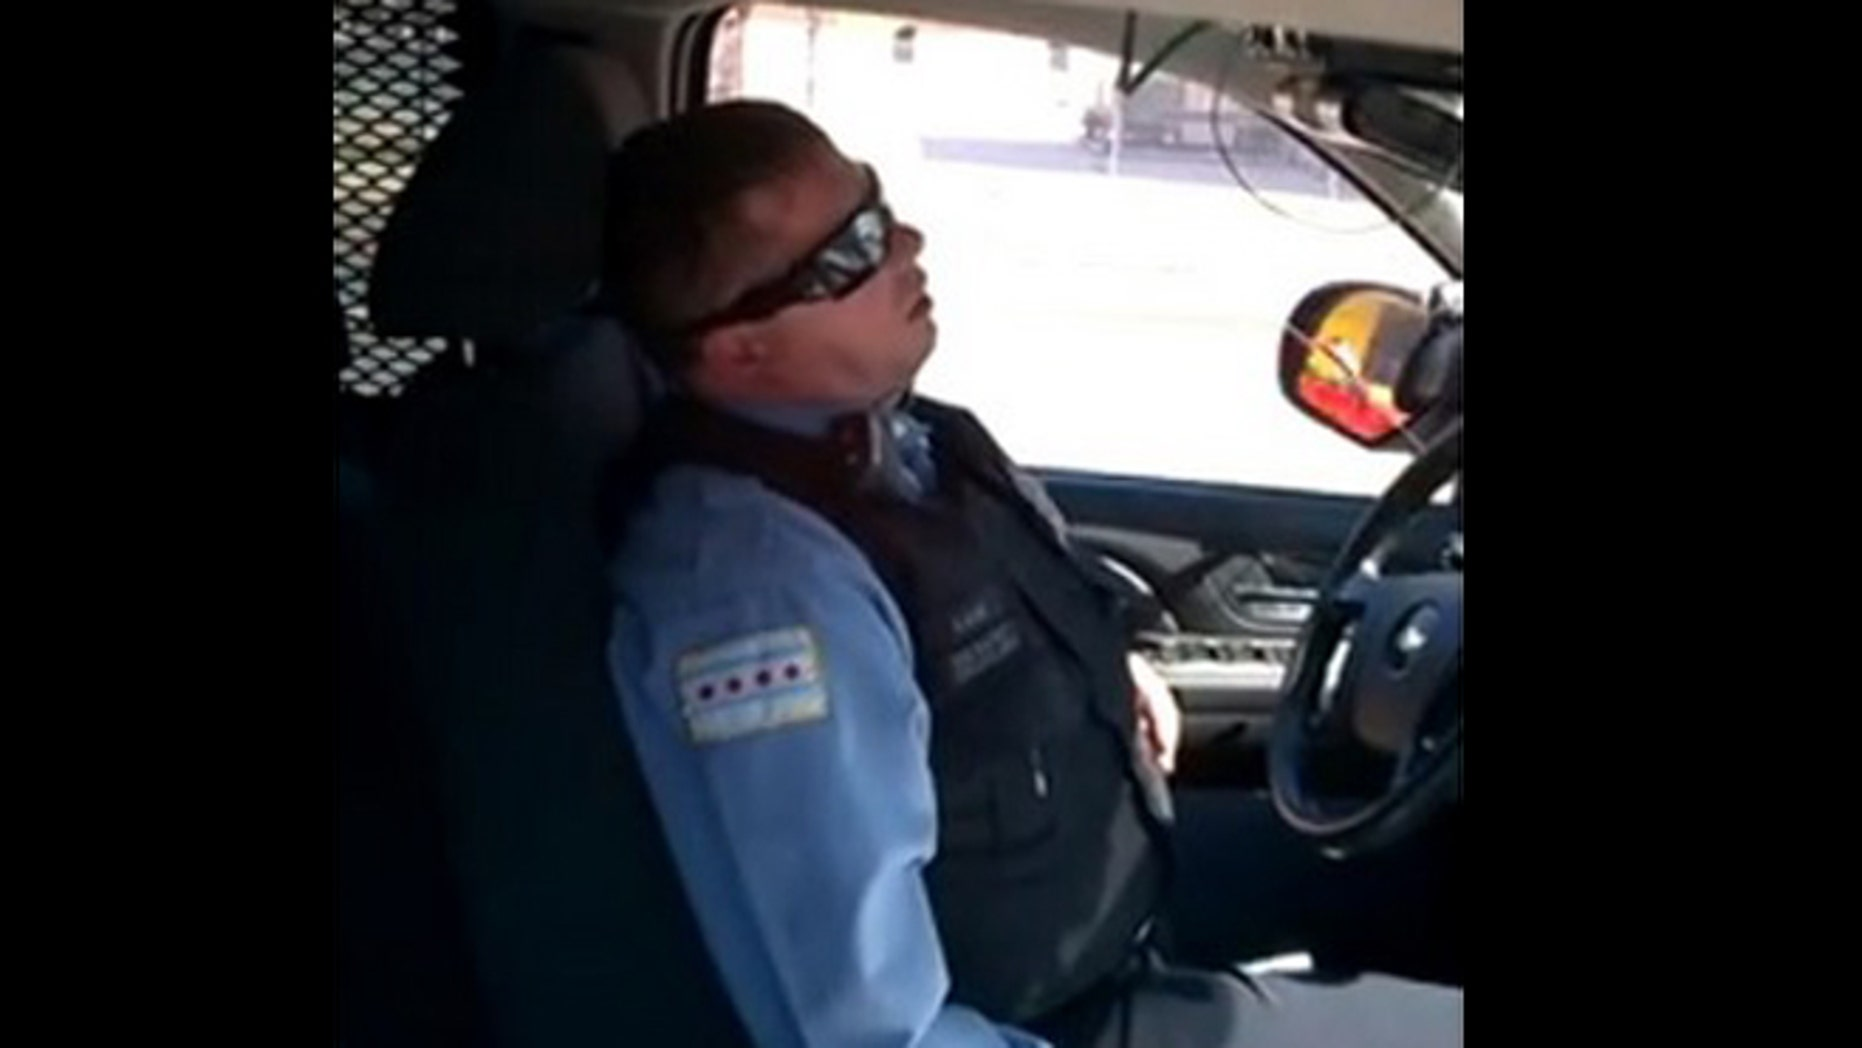 A video of a Chicago officer sleeping in his SUV parked on a busy street has gone viral.